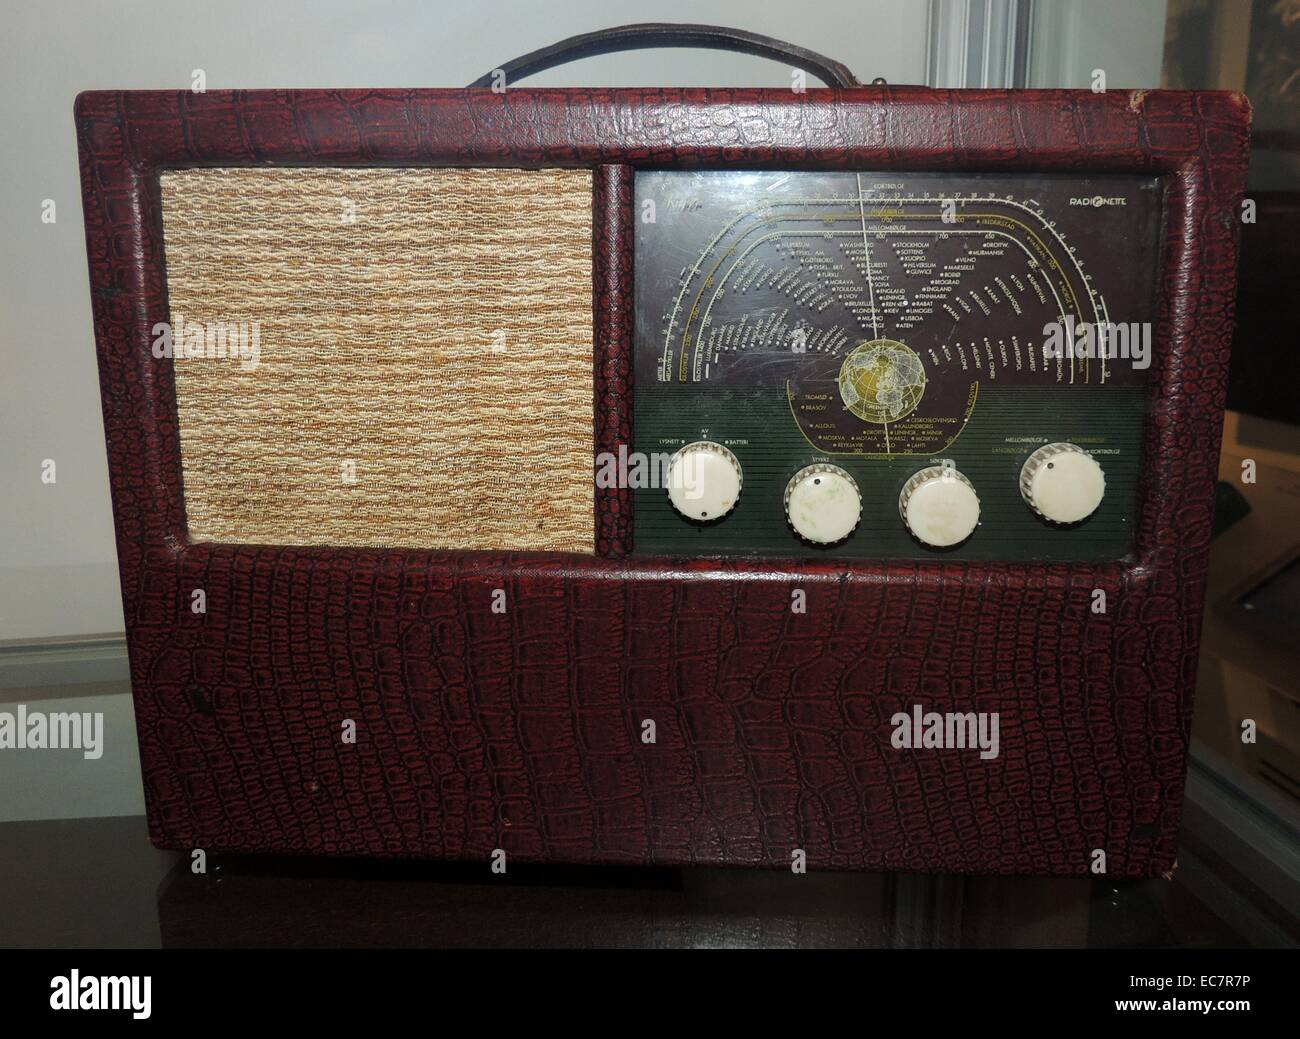 Courier radio receiver from 1950 has 4 radiator combined net and battery receiver. Dated 1950 - Stock Image